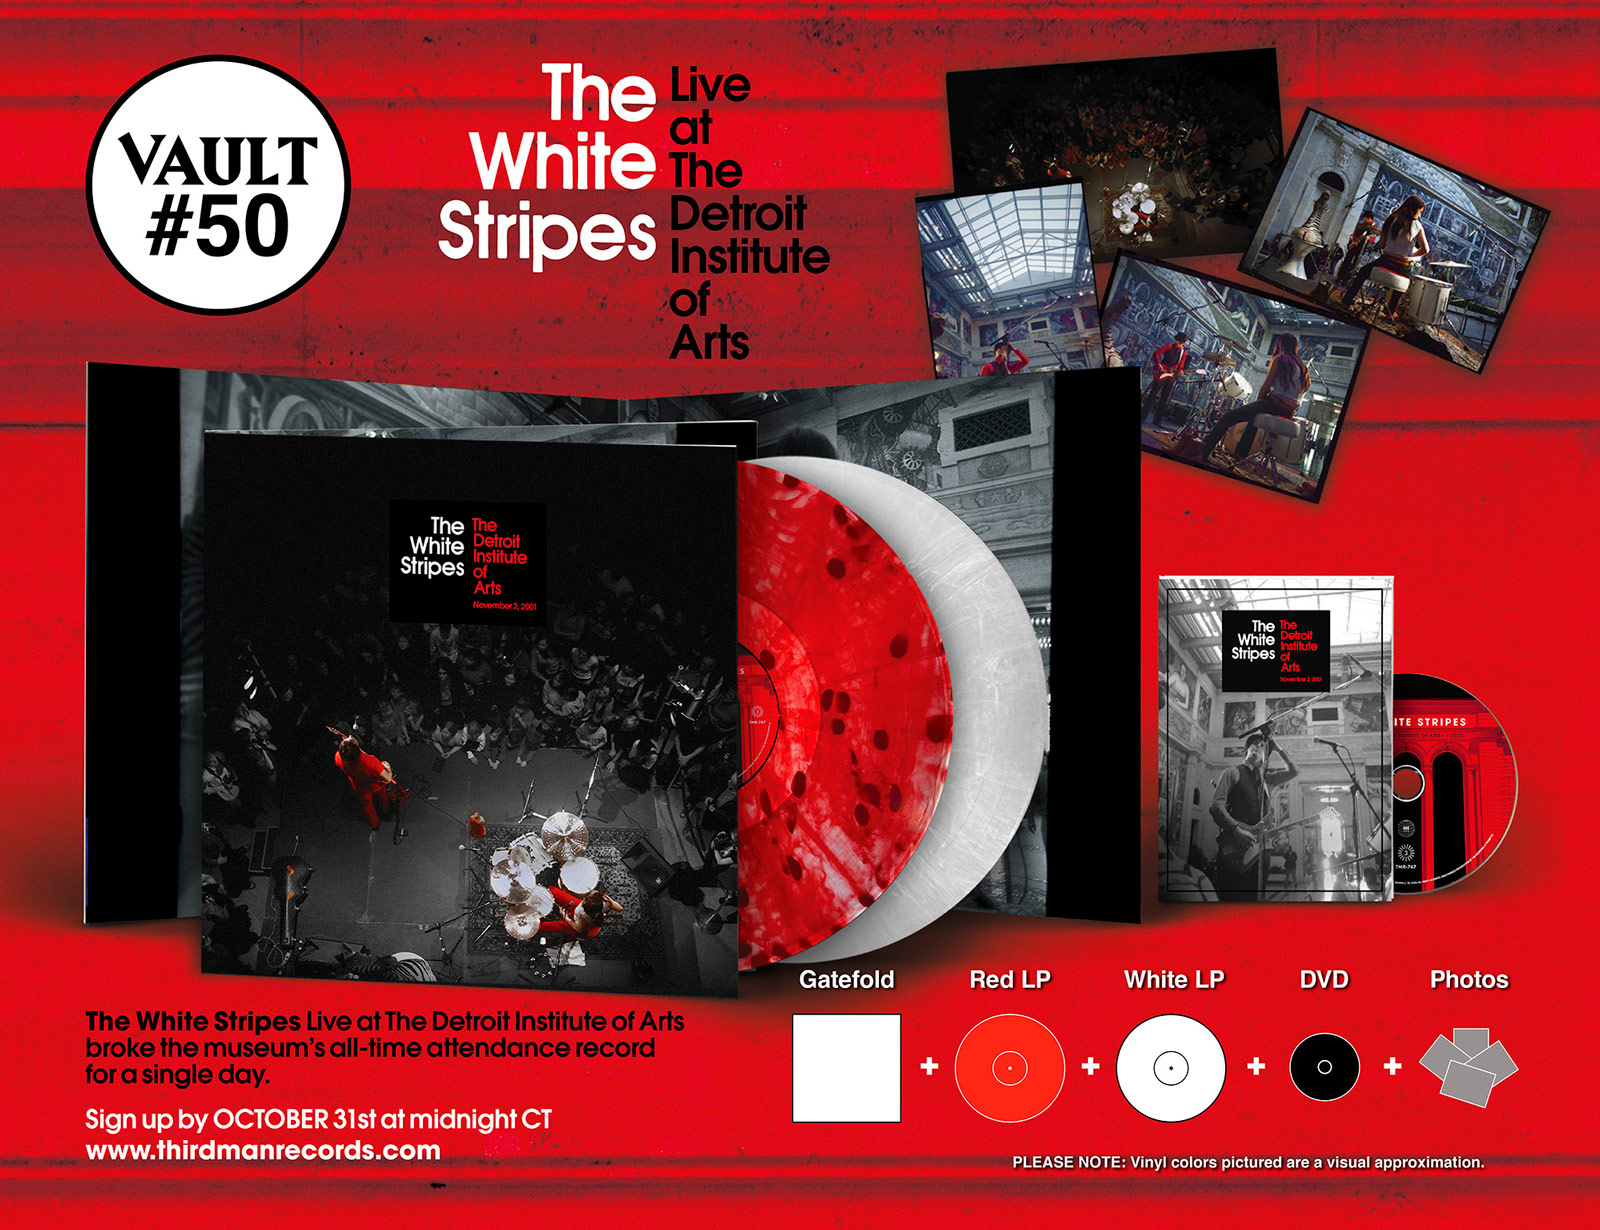 Vault 50: The White Stripes Live at the Detroit Institute of Arts